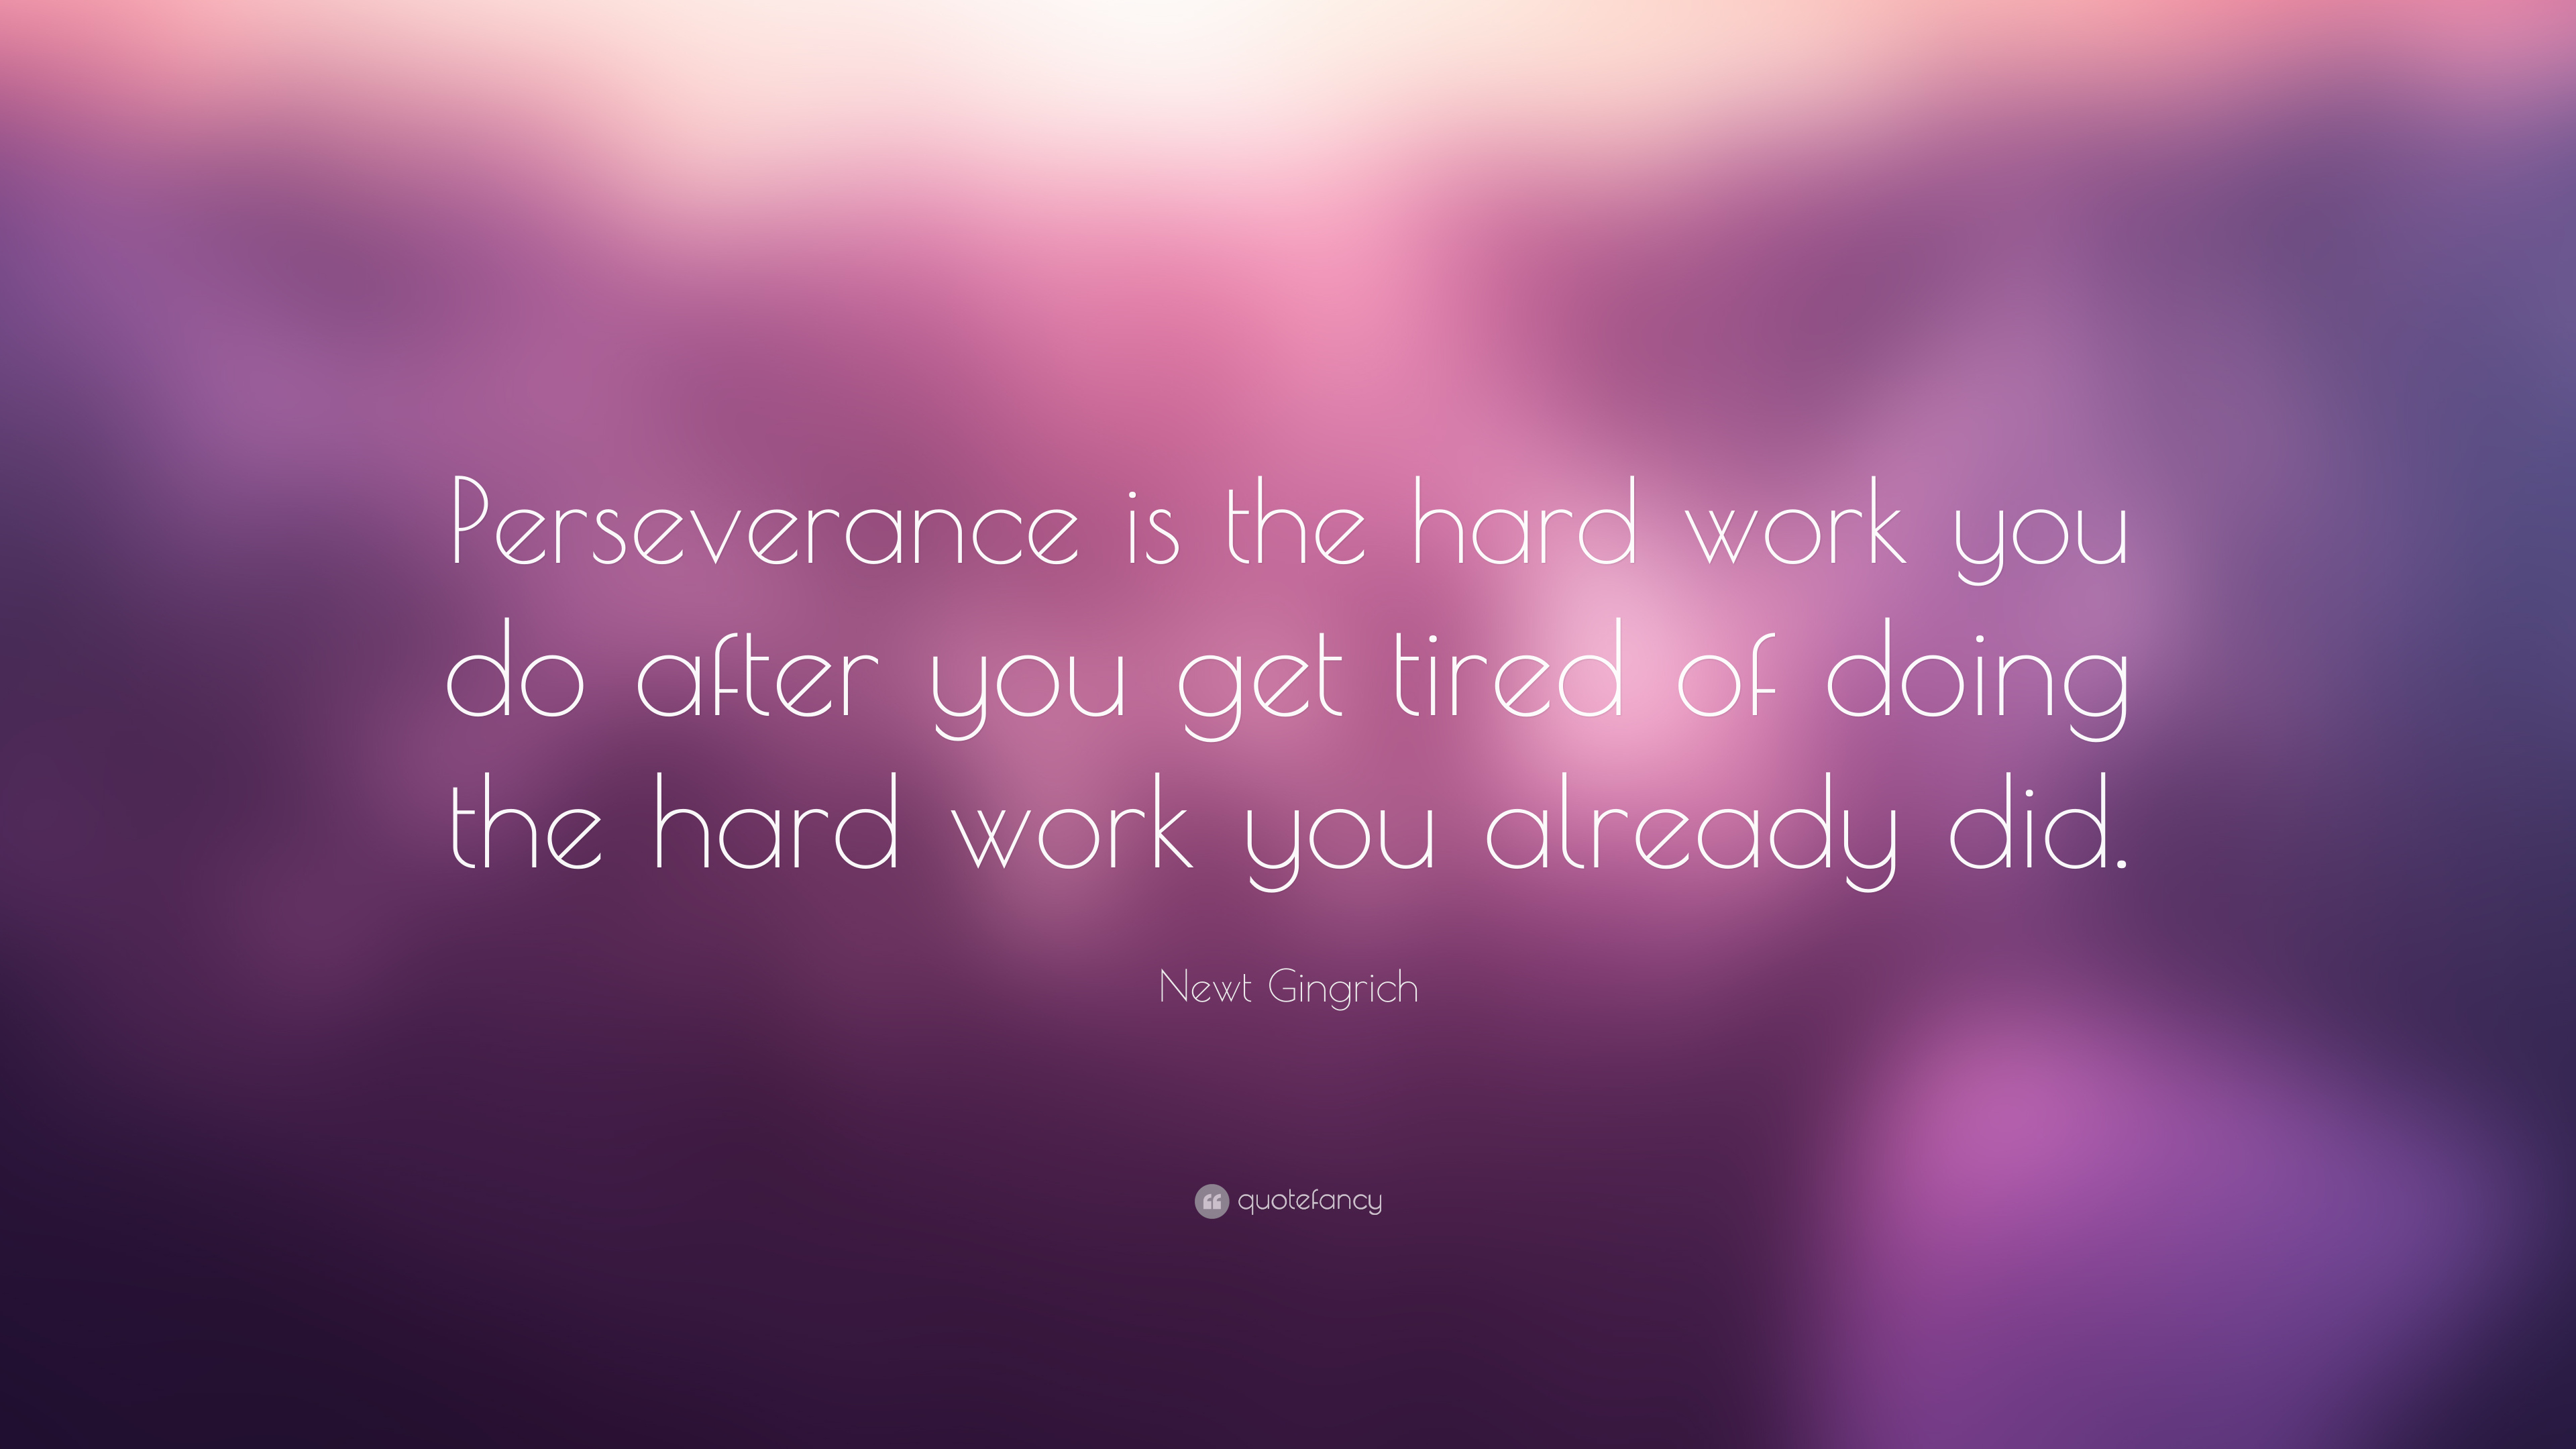 Newt Gingrich Quote Perseverance Is The Hard Work You Do After You